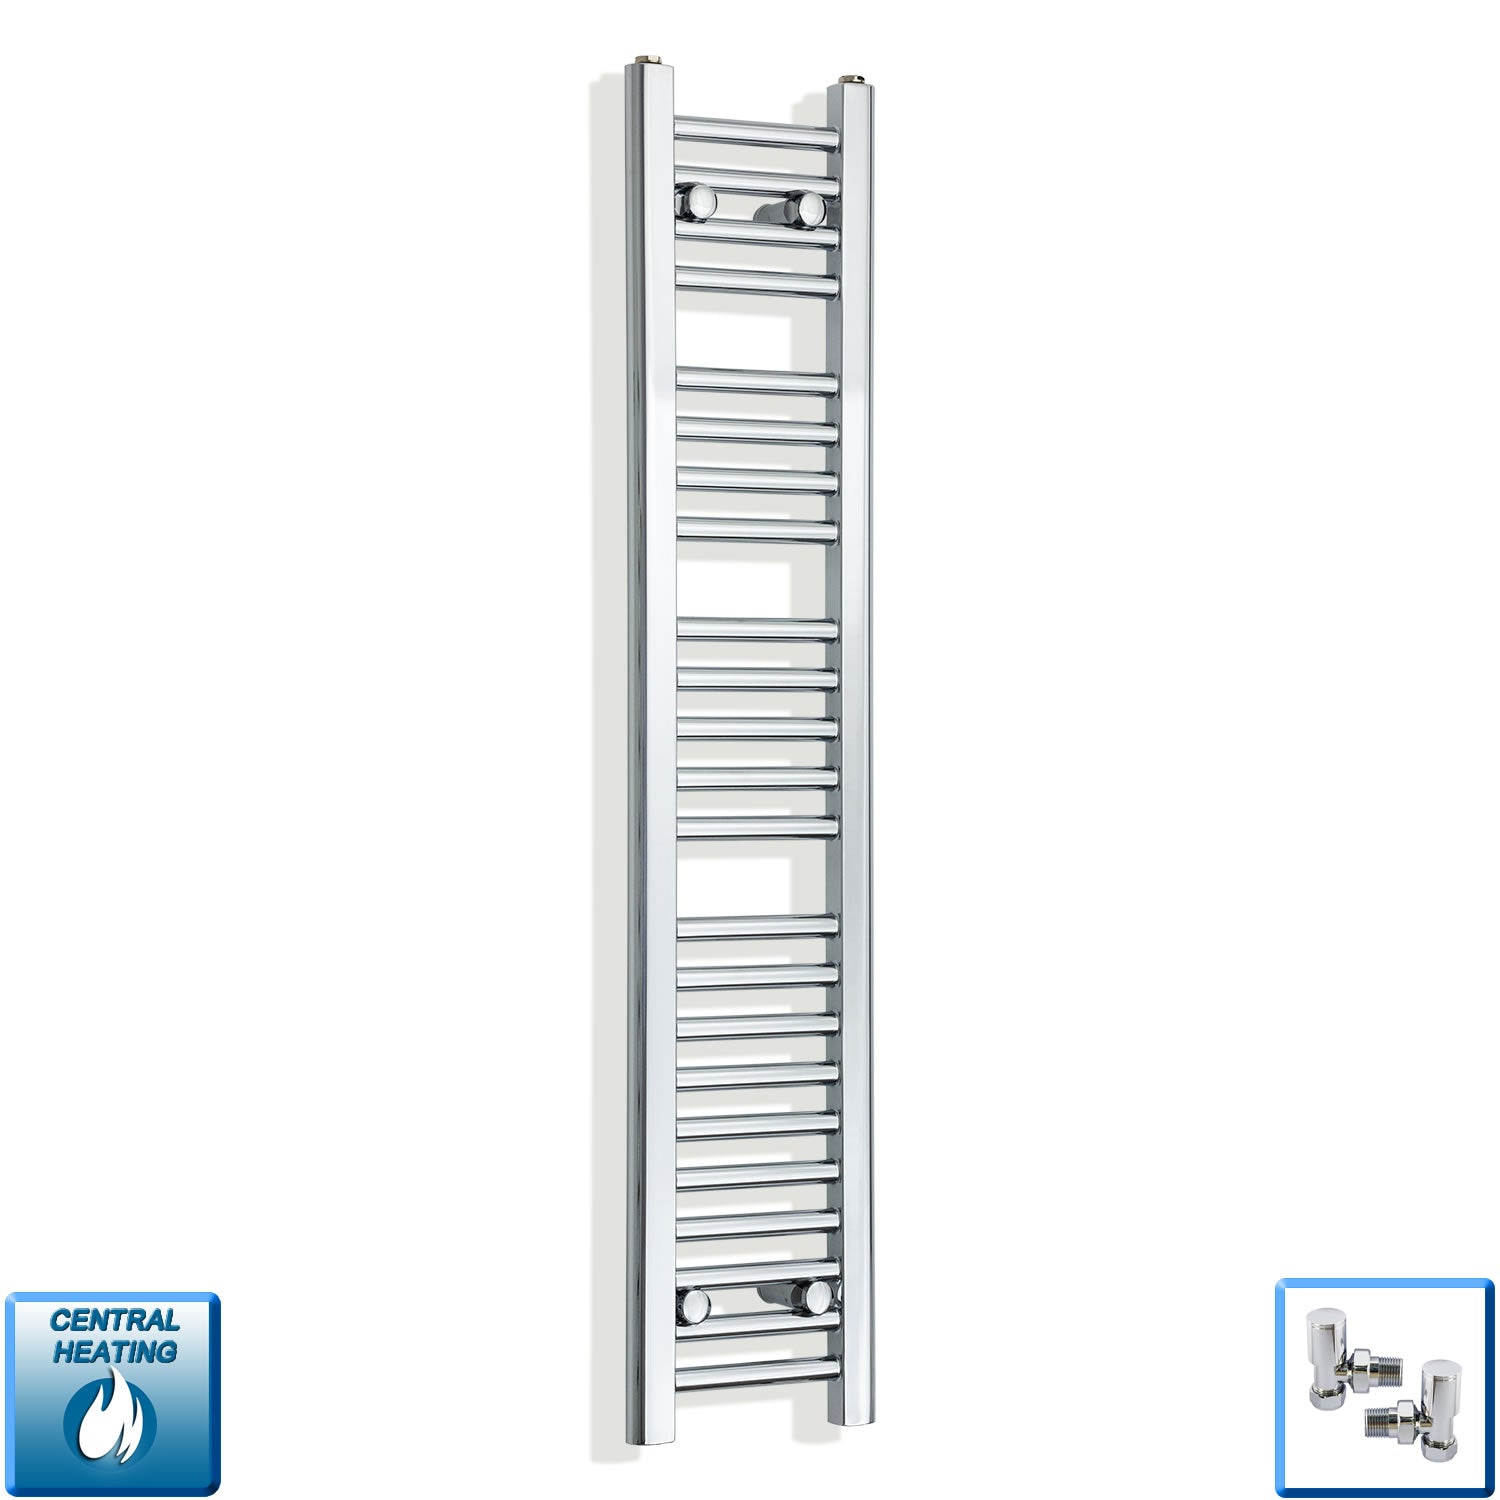 250mm Wide 1200mm High Chrome Towel Rail Radiator With Angled Valve